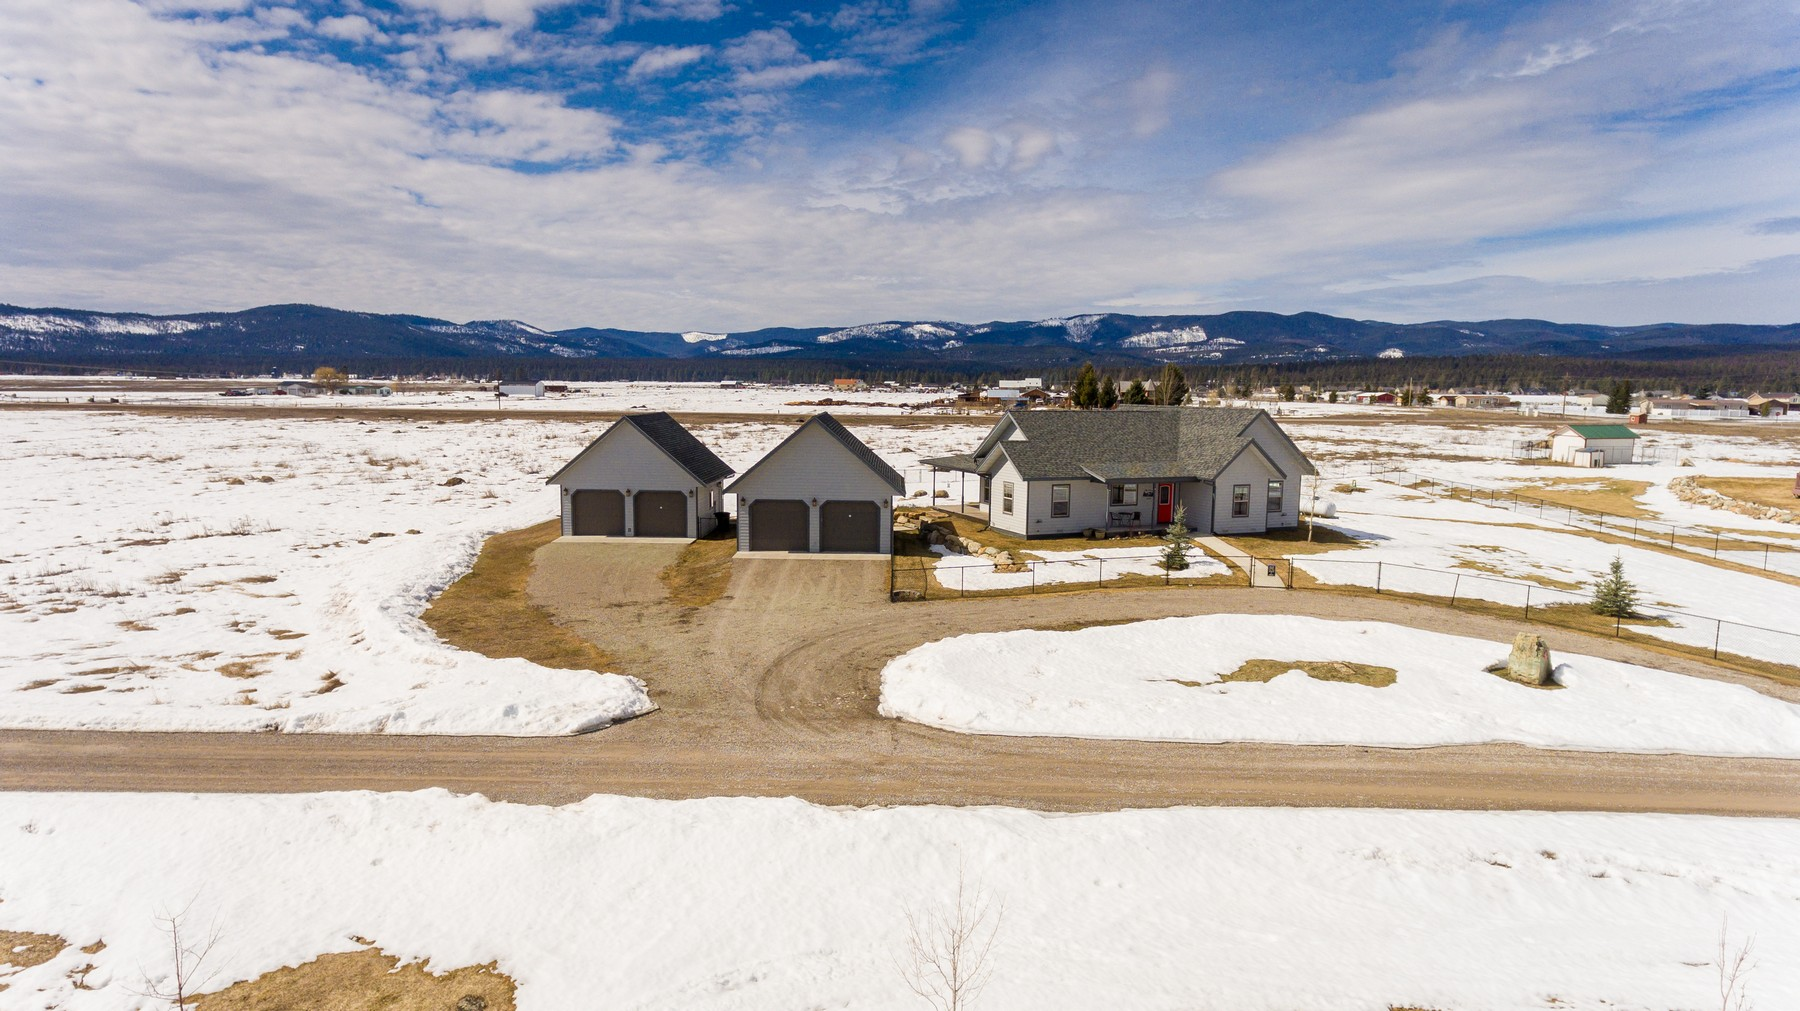 Additional photo for property listing at 469 Lost Farm Ln , Kalispell, MT 59901 469  Lost Farm Ln Kalispell, Montana 59901 United States